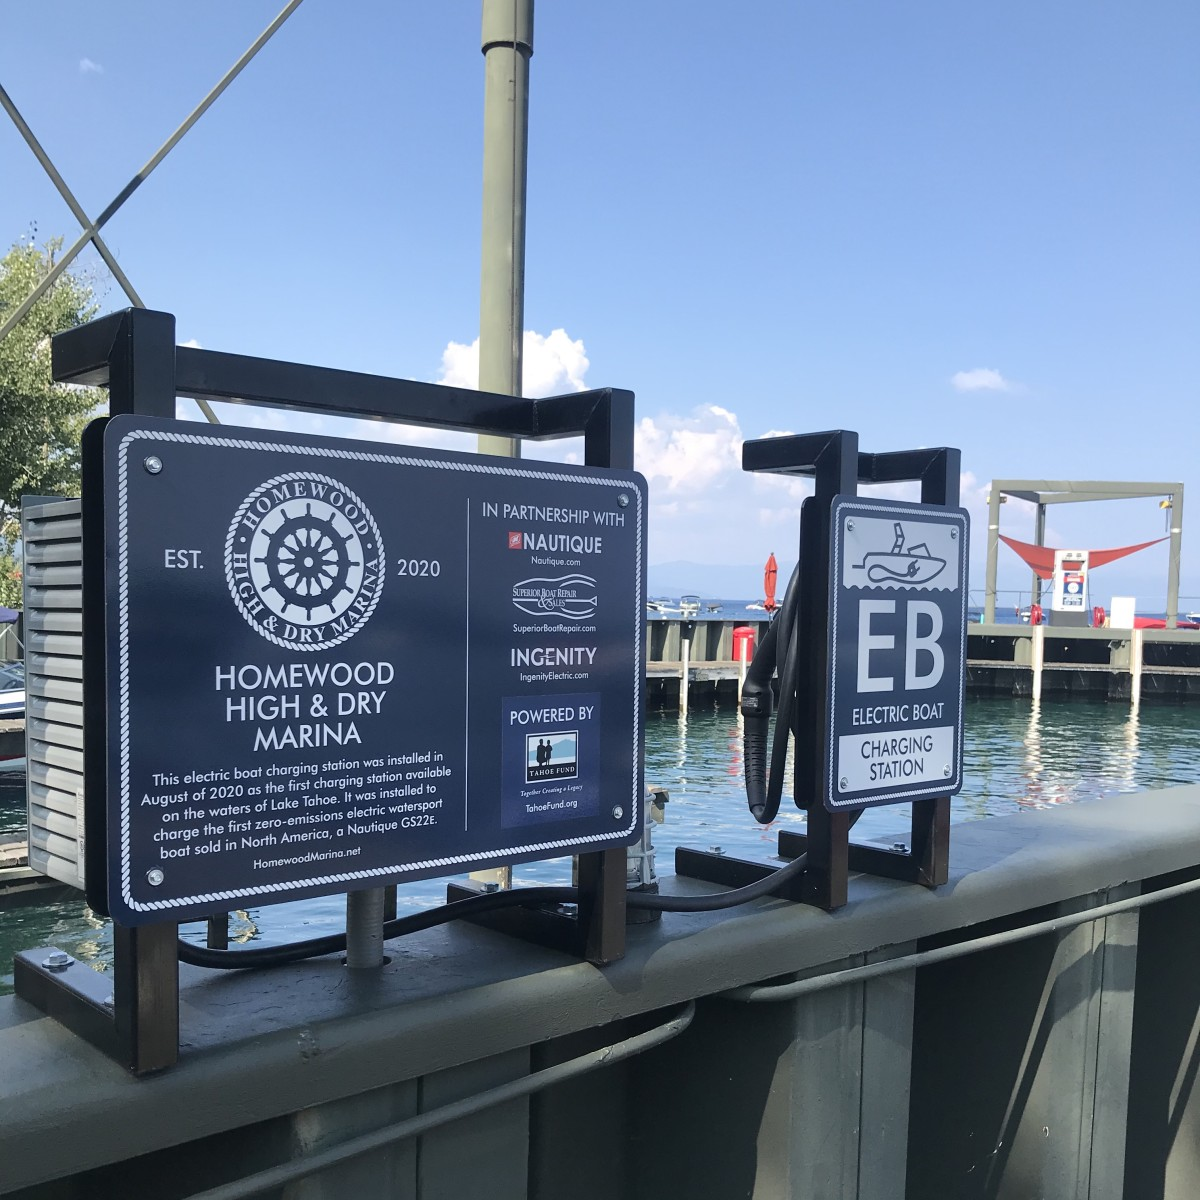 The e-charging station is on Lake Tahoe.